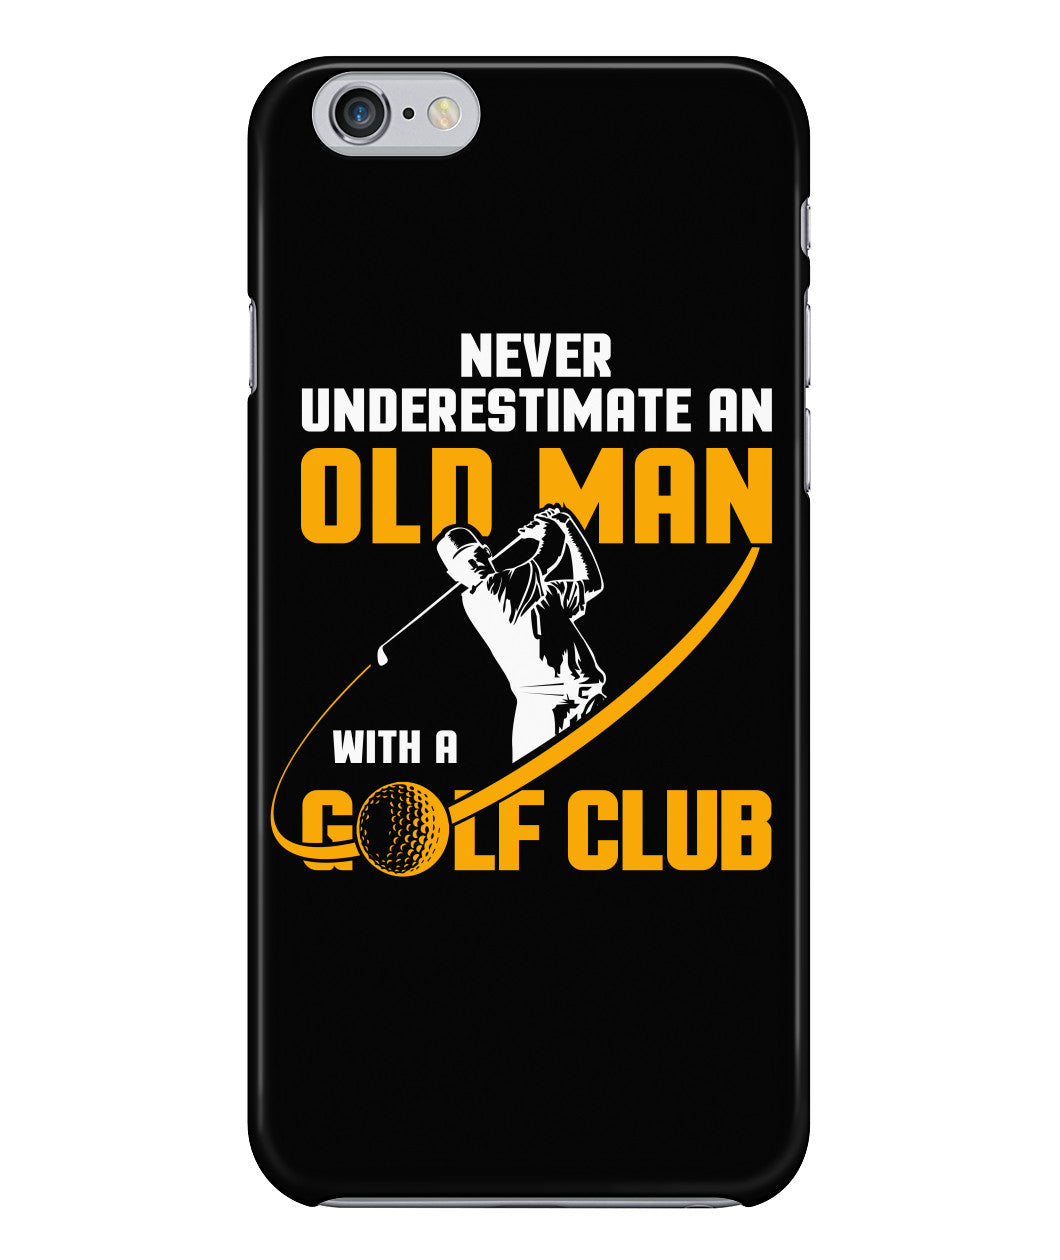 Old man golf club phone case